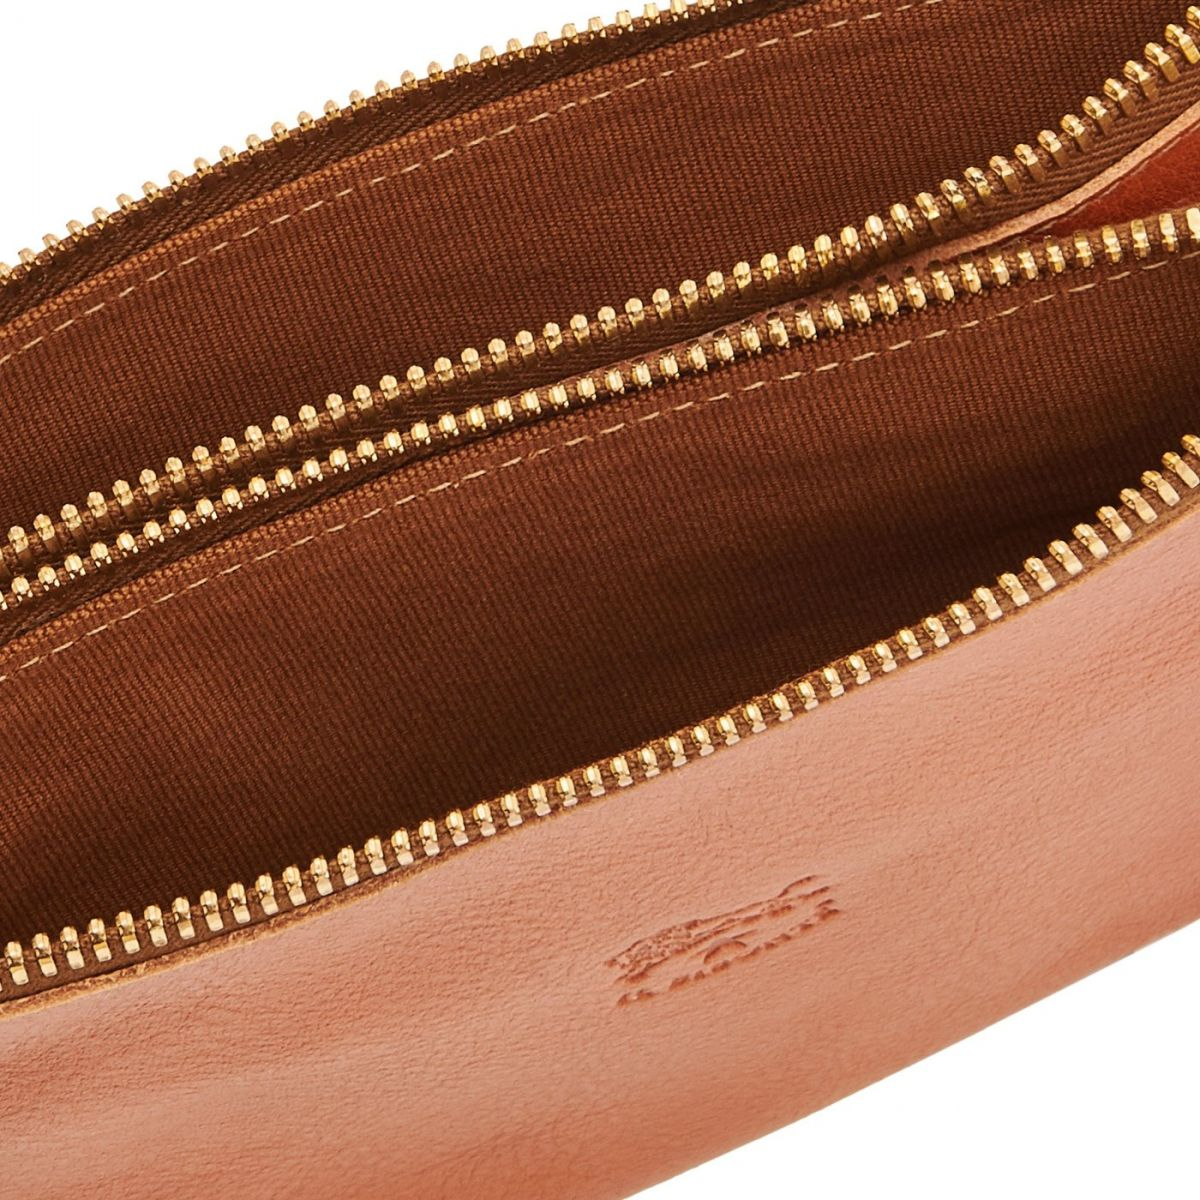 Women's Clutch Bag Talamone in Cowhide Double Leather BCL022 color Caramel | Details